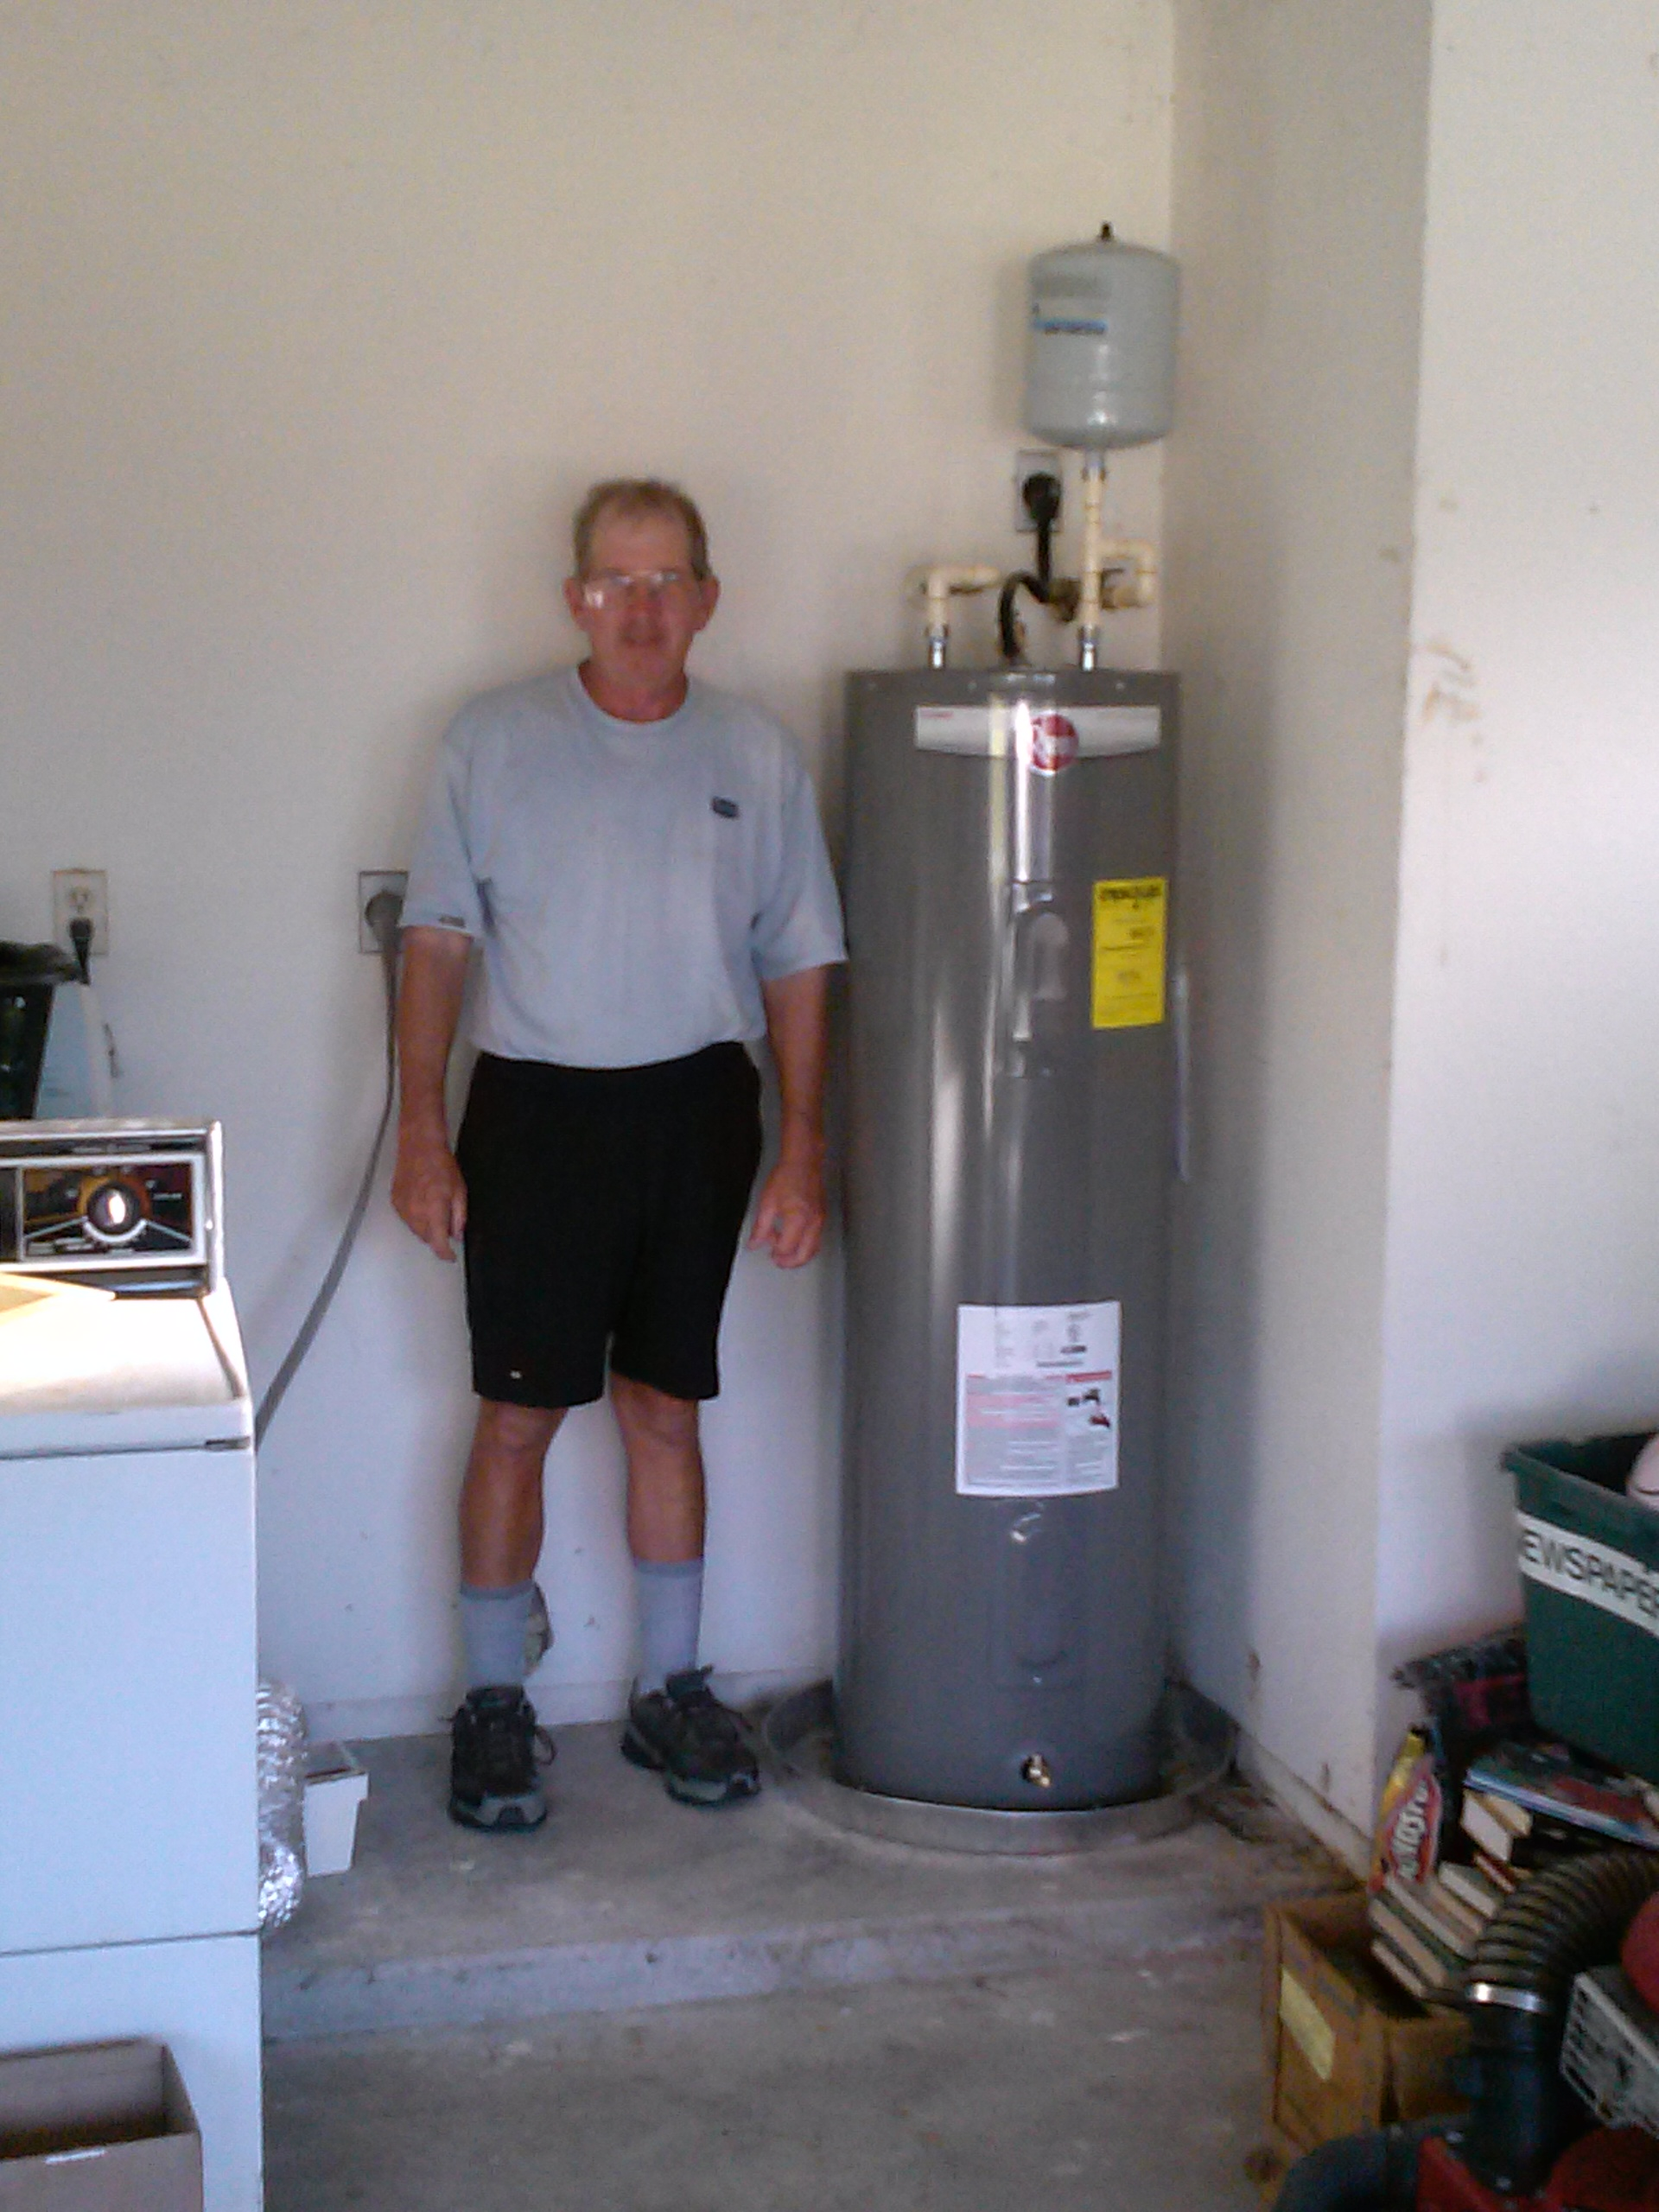 Home depot tankless water heater